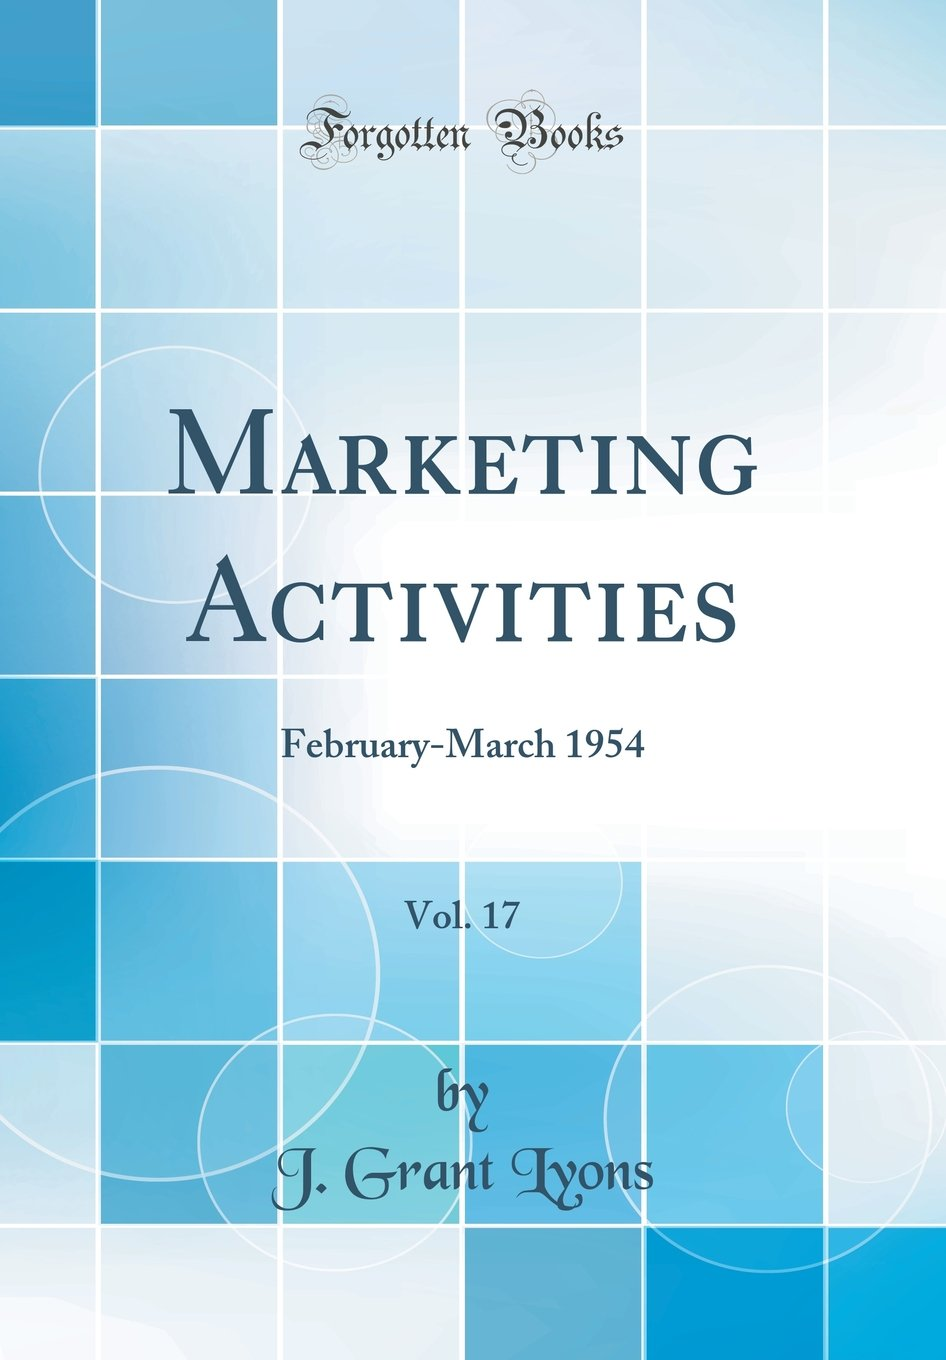 Marketing Activities, Vol. 17: February-March 1954 (Classic Reprint) pdf epub